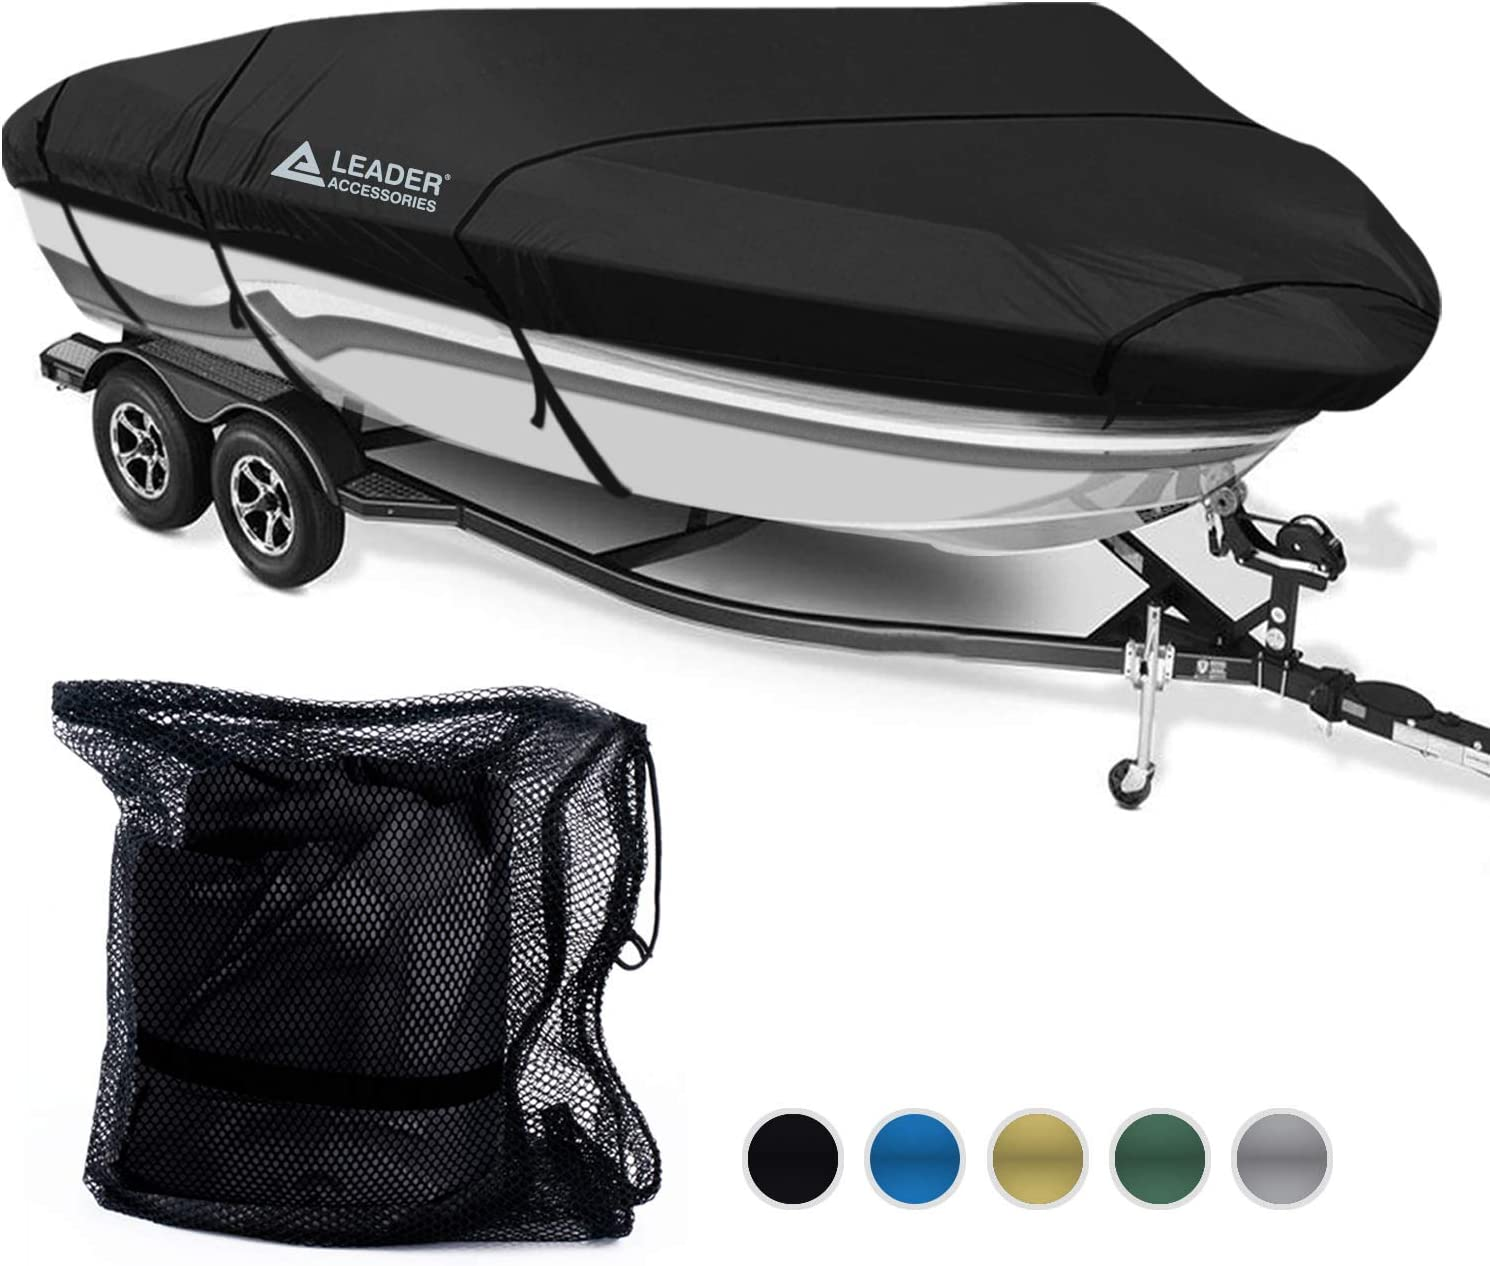 Boat Full Outboard Engine Motor Cover Fit 20-30HP All Weather Protection 210D